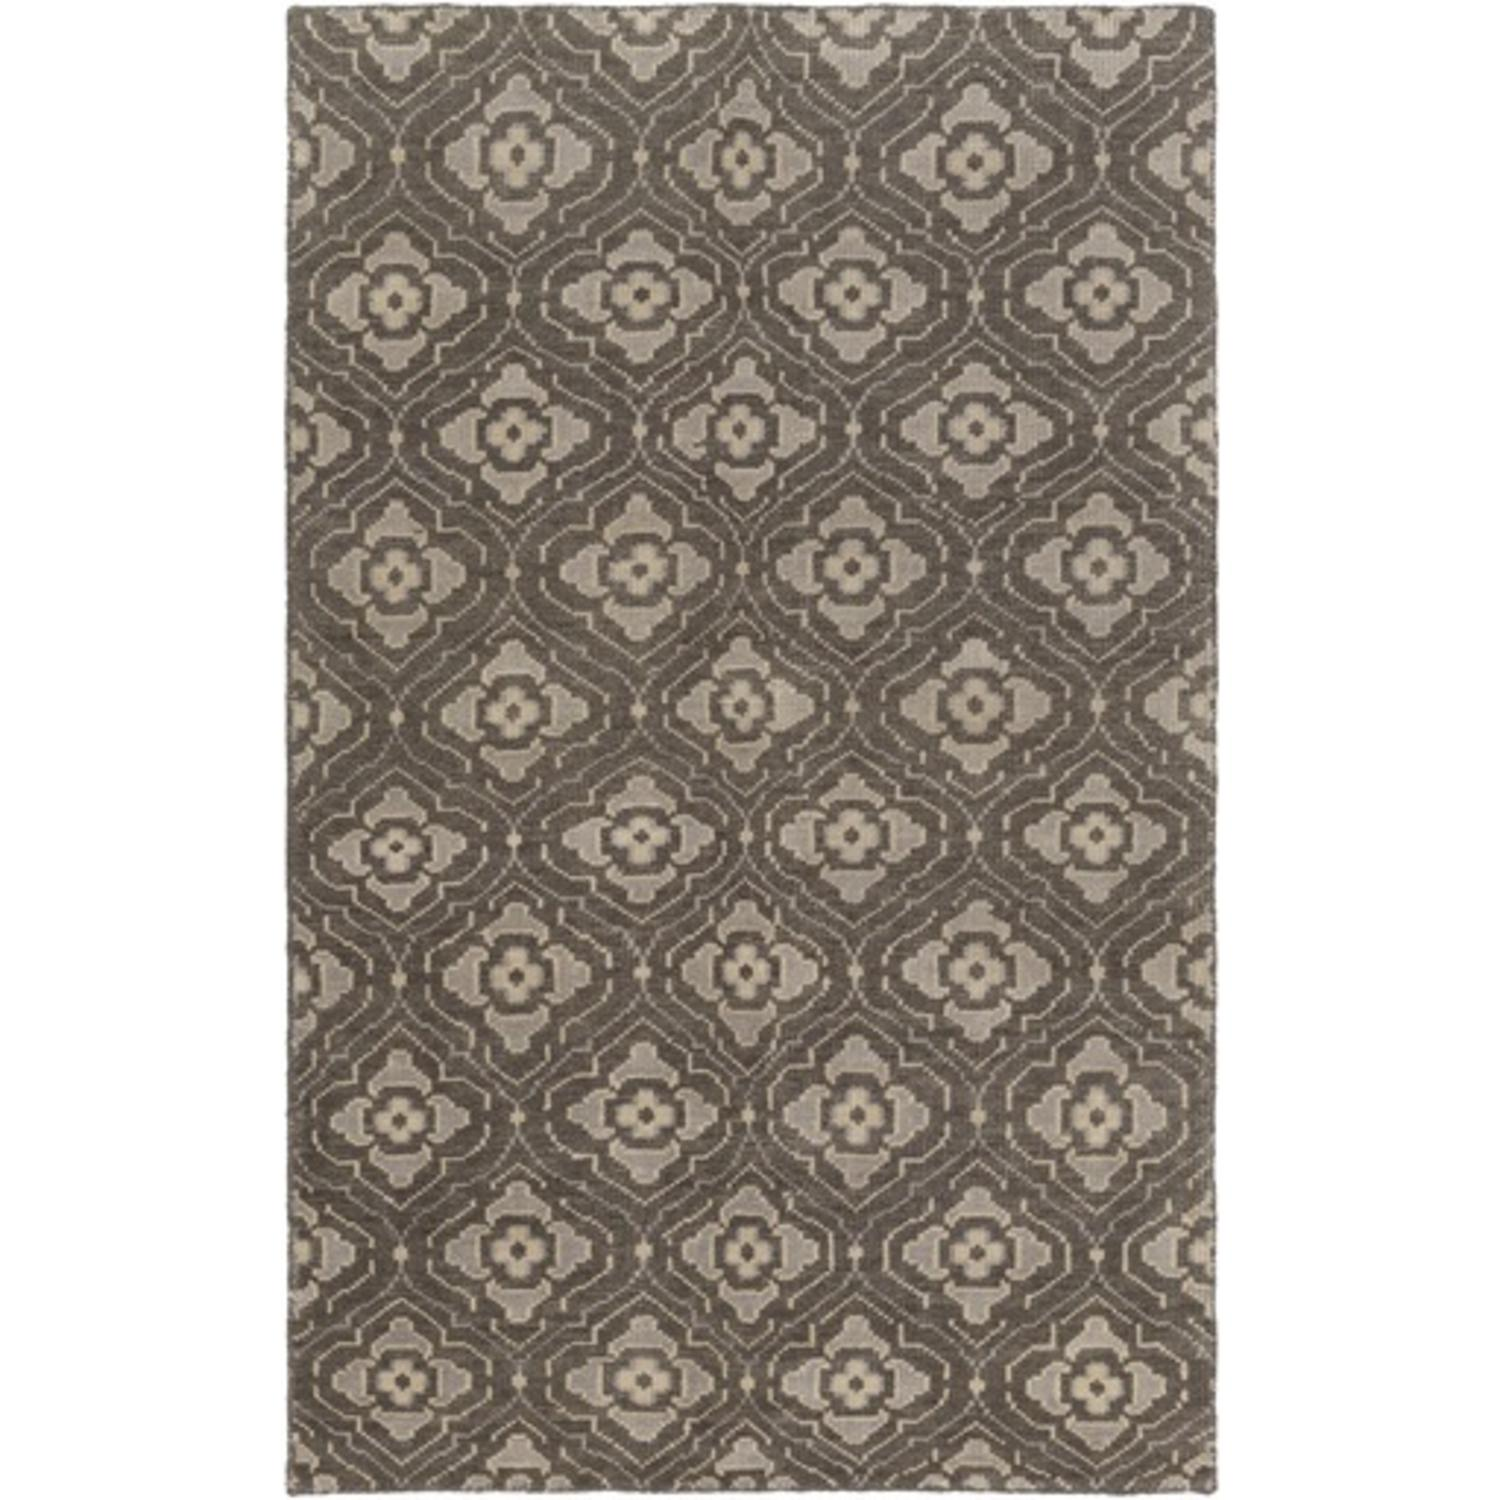 5' x 8' Egyptian Bloom Chocolate and Tan Brown Area Throw Rug